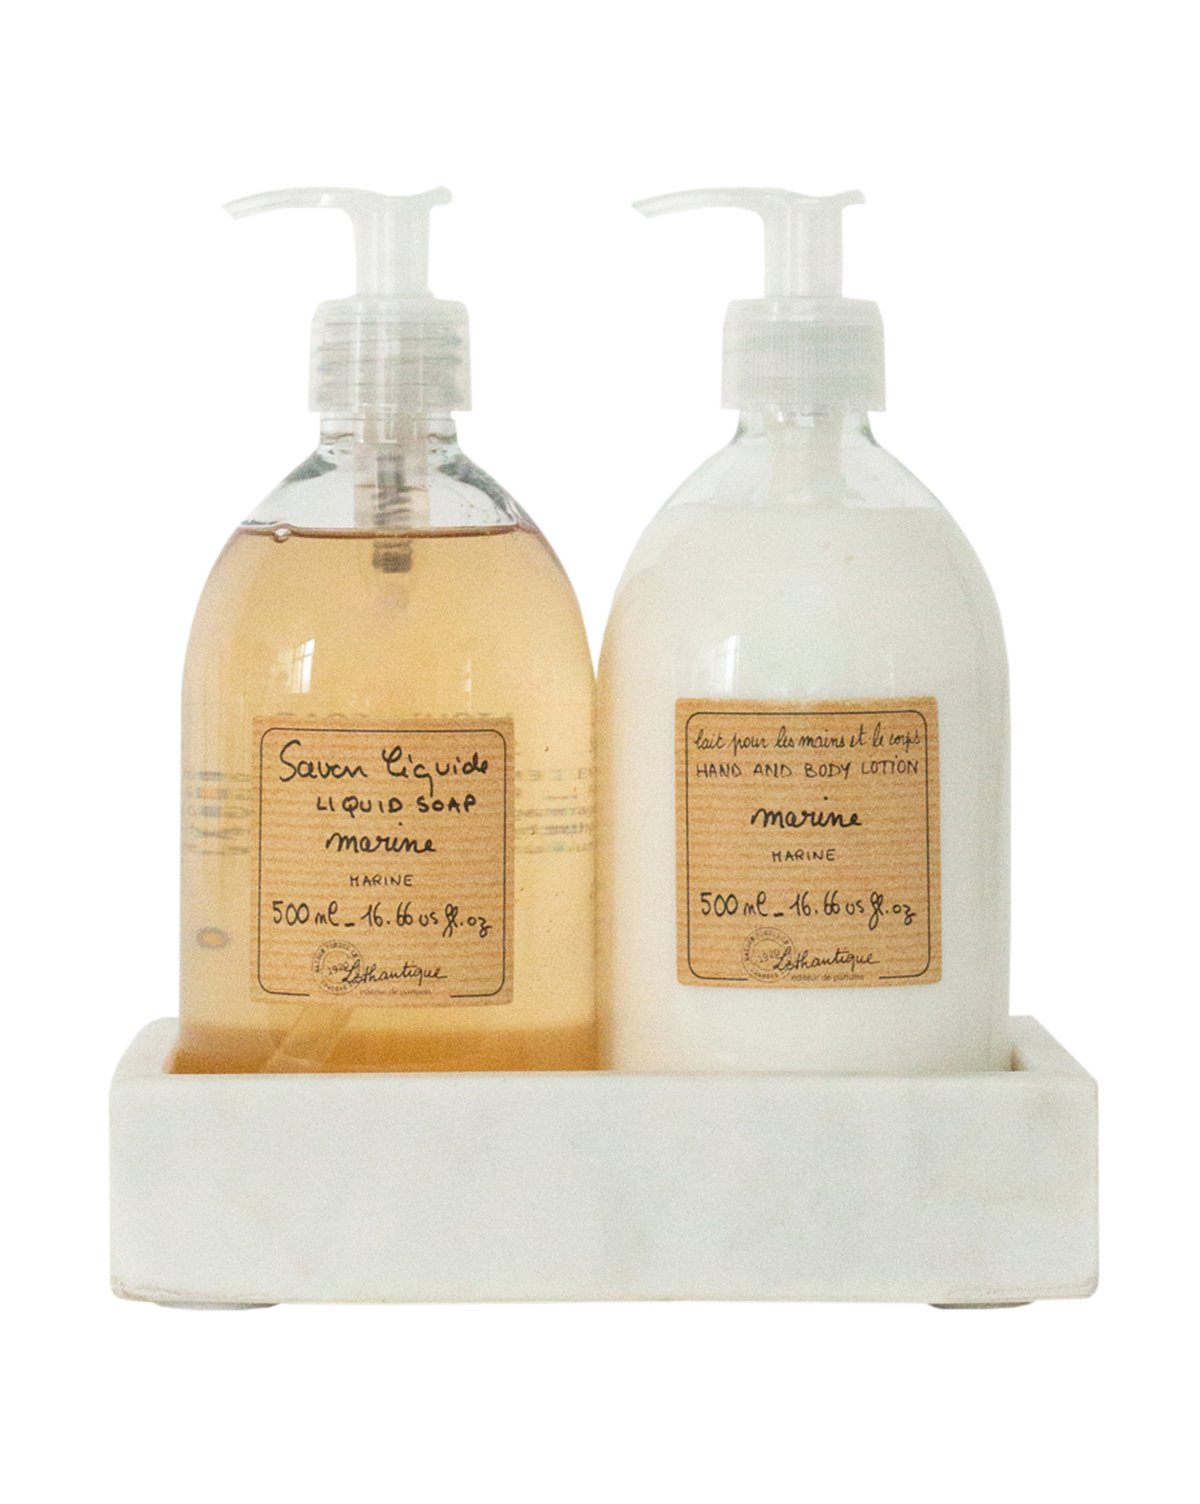 Lothantique_Hand_Soap_and_Lotion_1.jpg